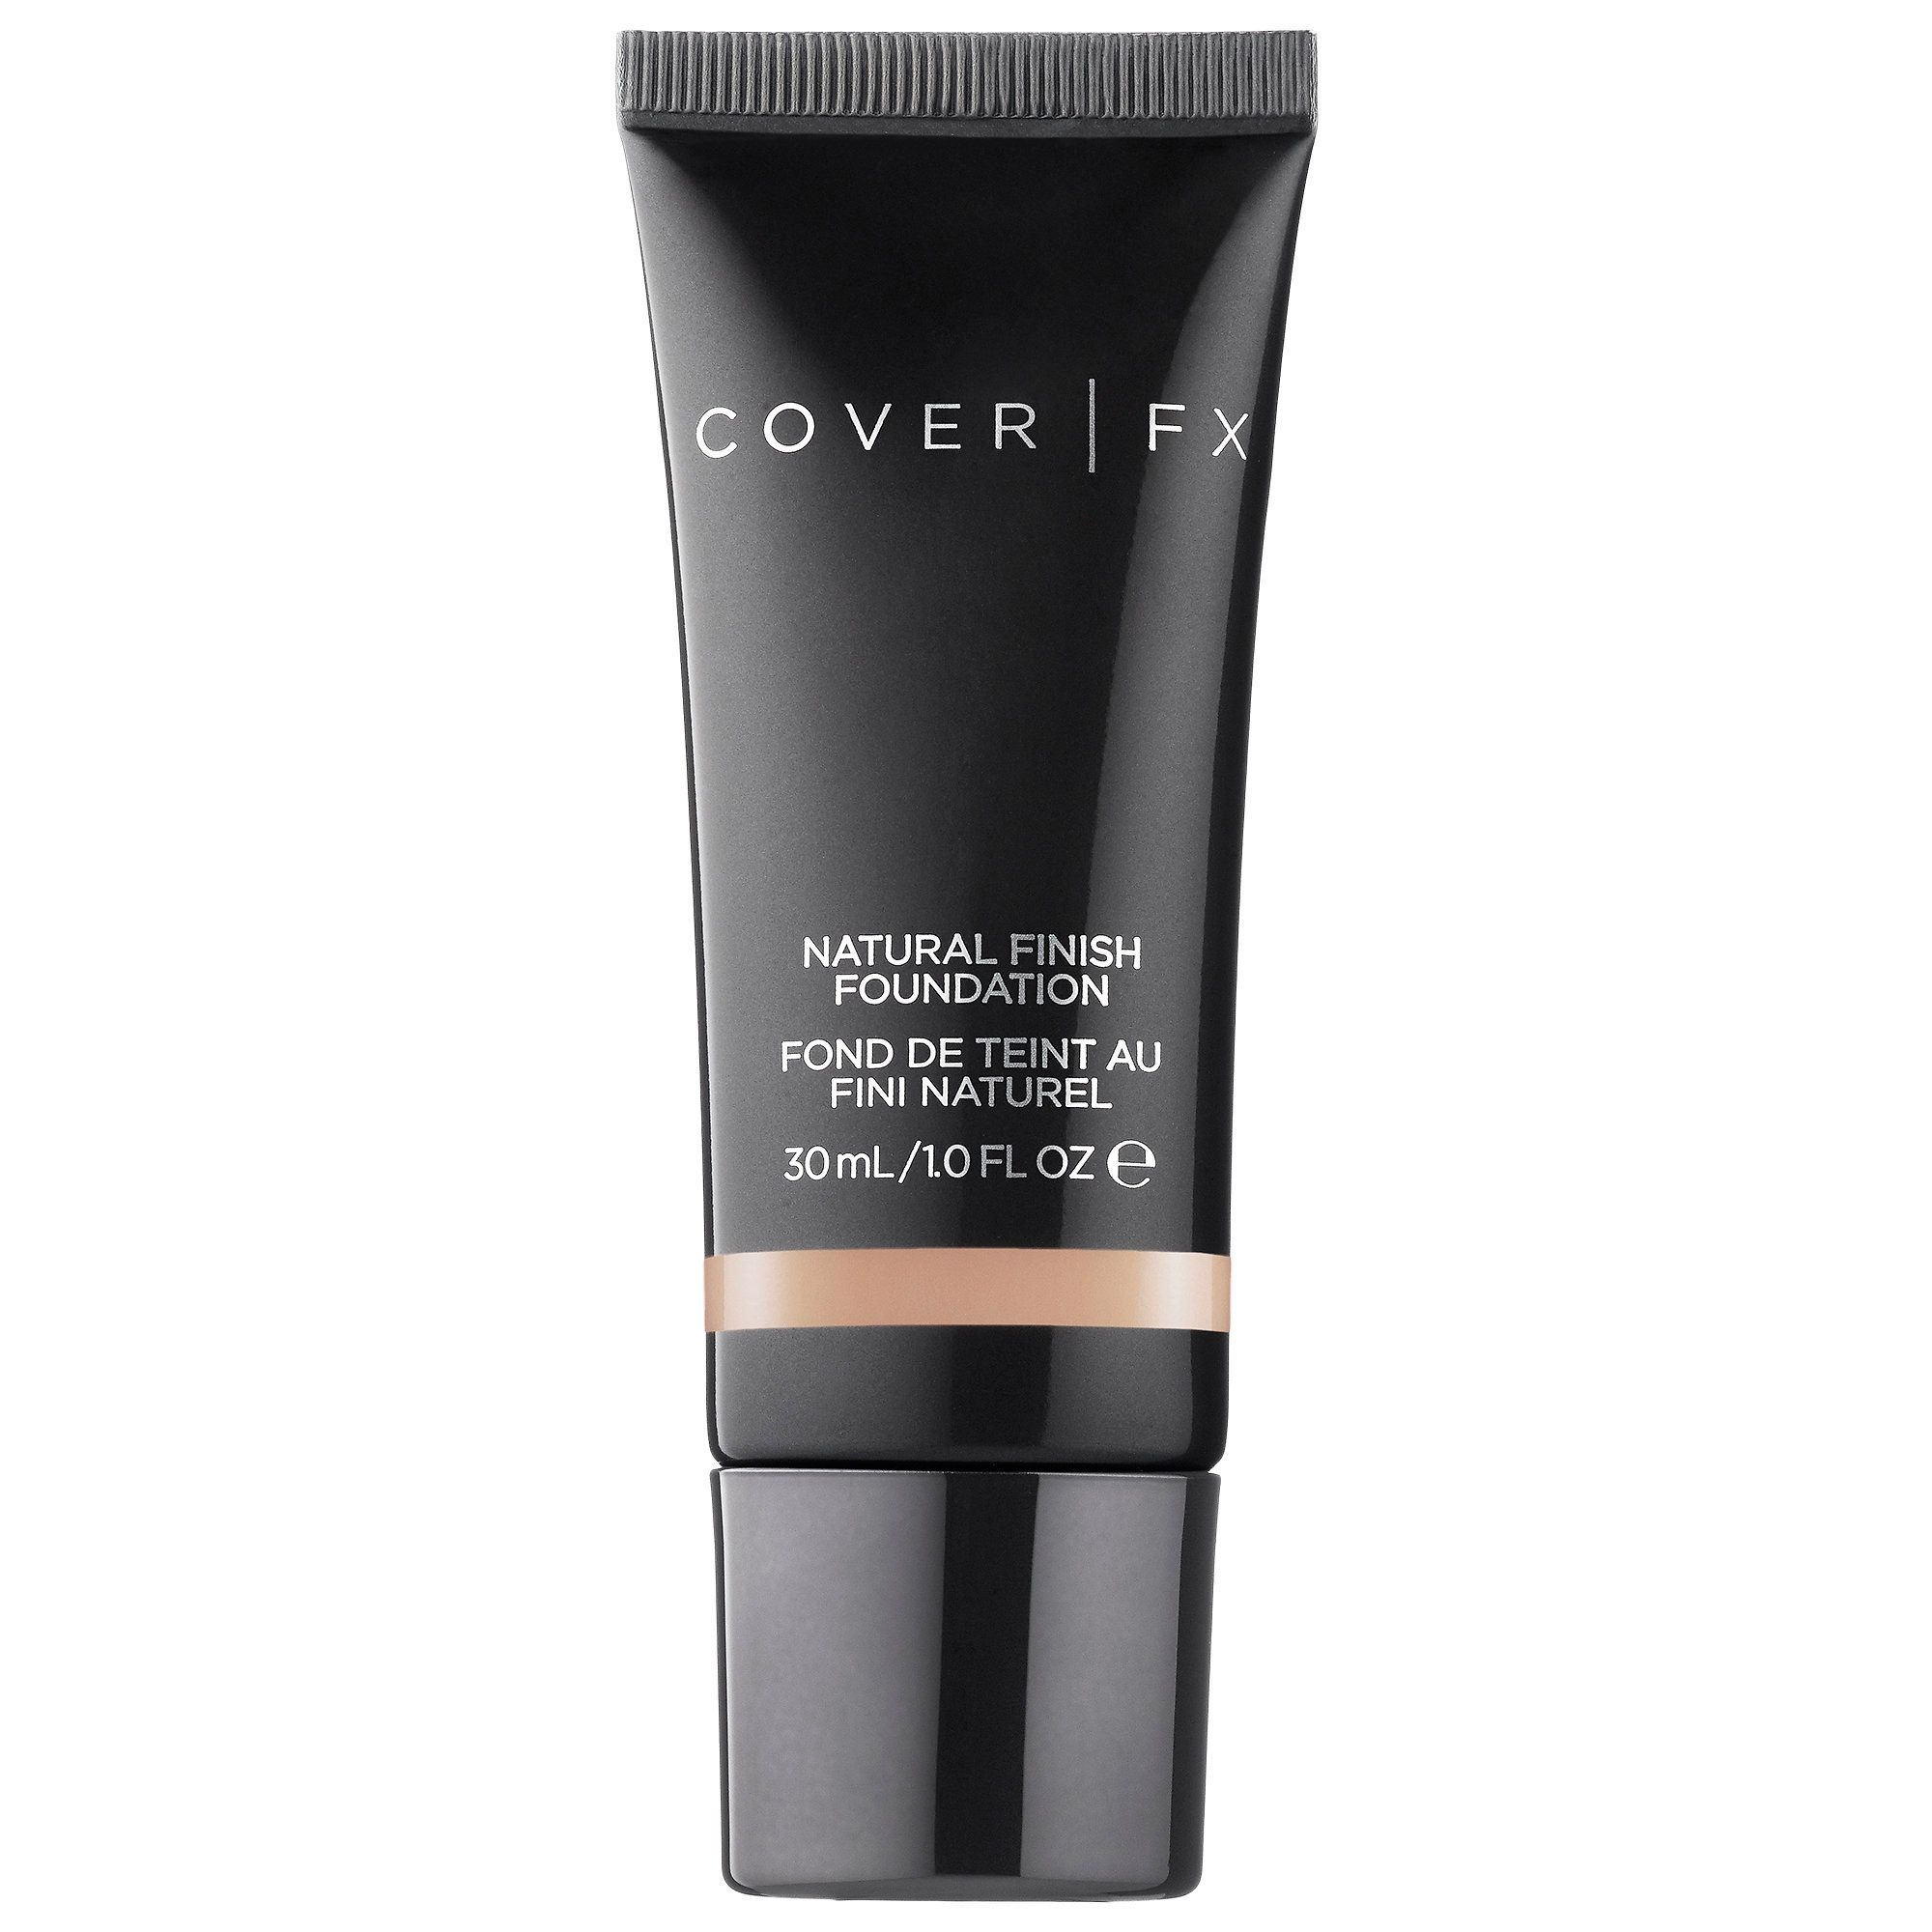 The Best Foundations for AcneProne Skin Cover fx, Best